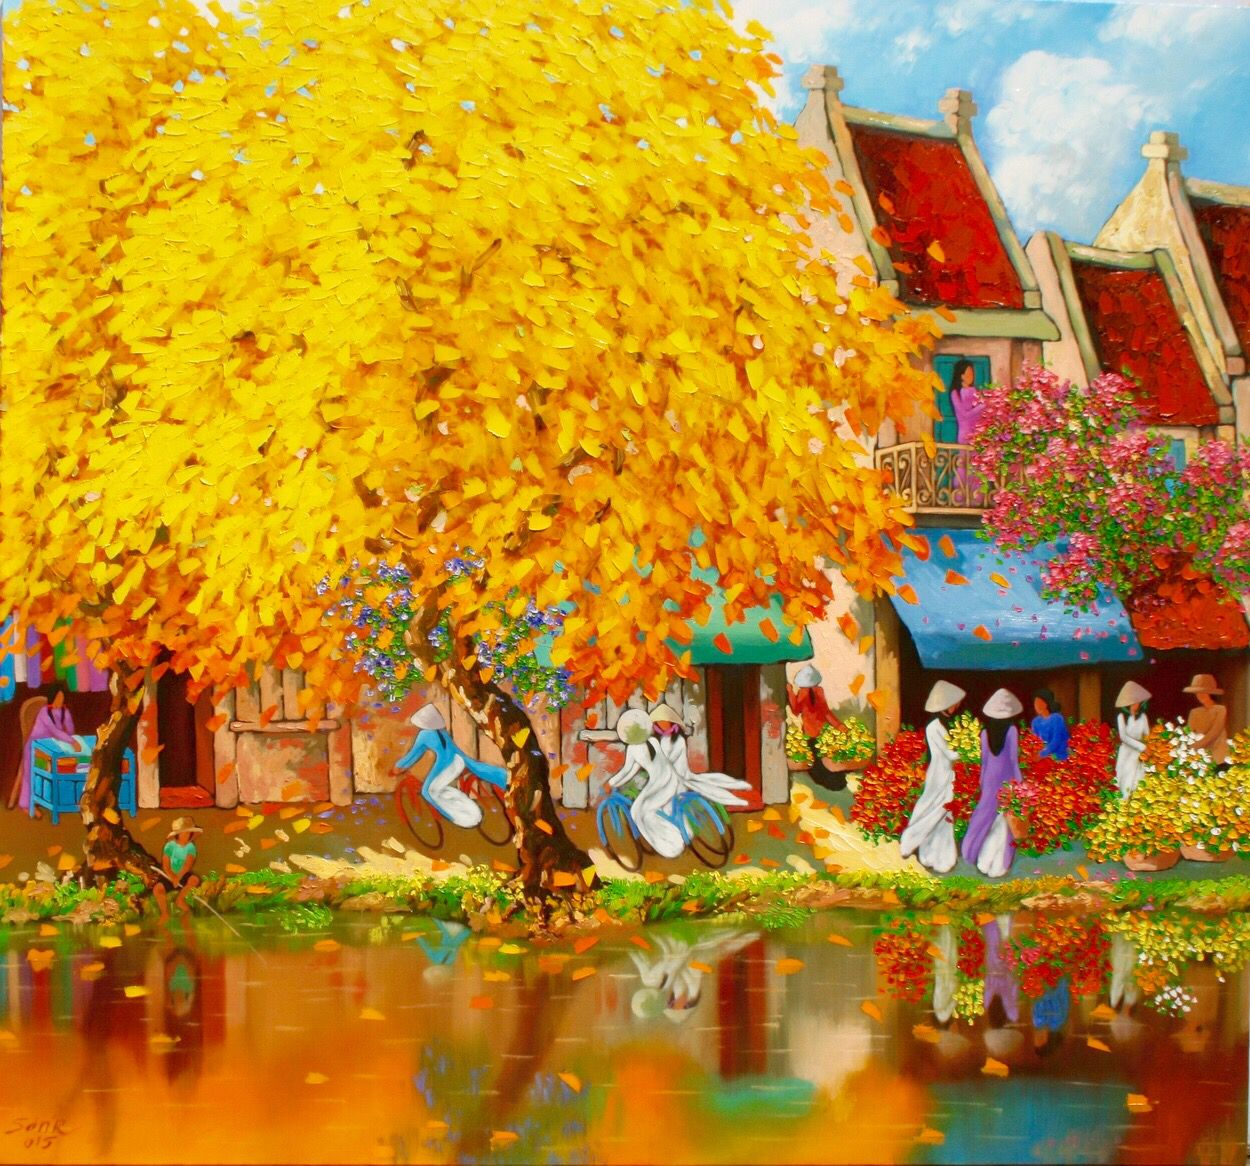 Autumn in Hanoi by Vietnam artist Duong Ngoc Son ... View his paintings at www.eyegalleryvn.com